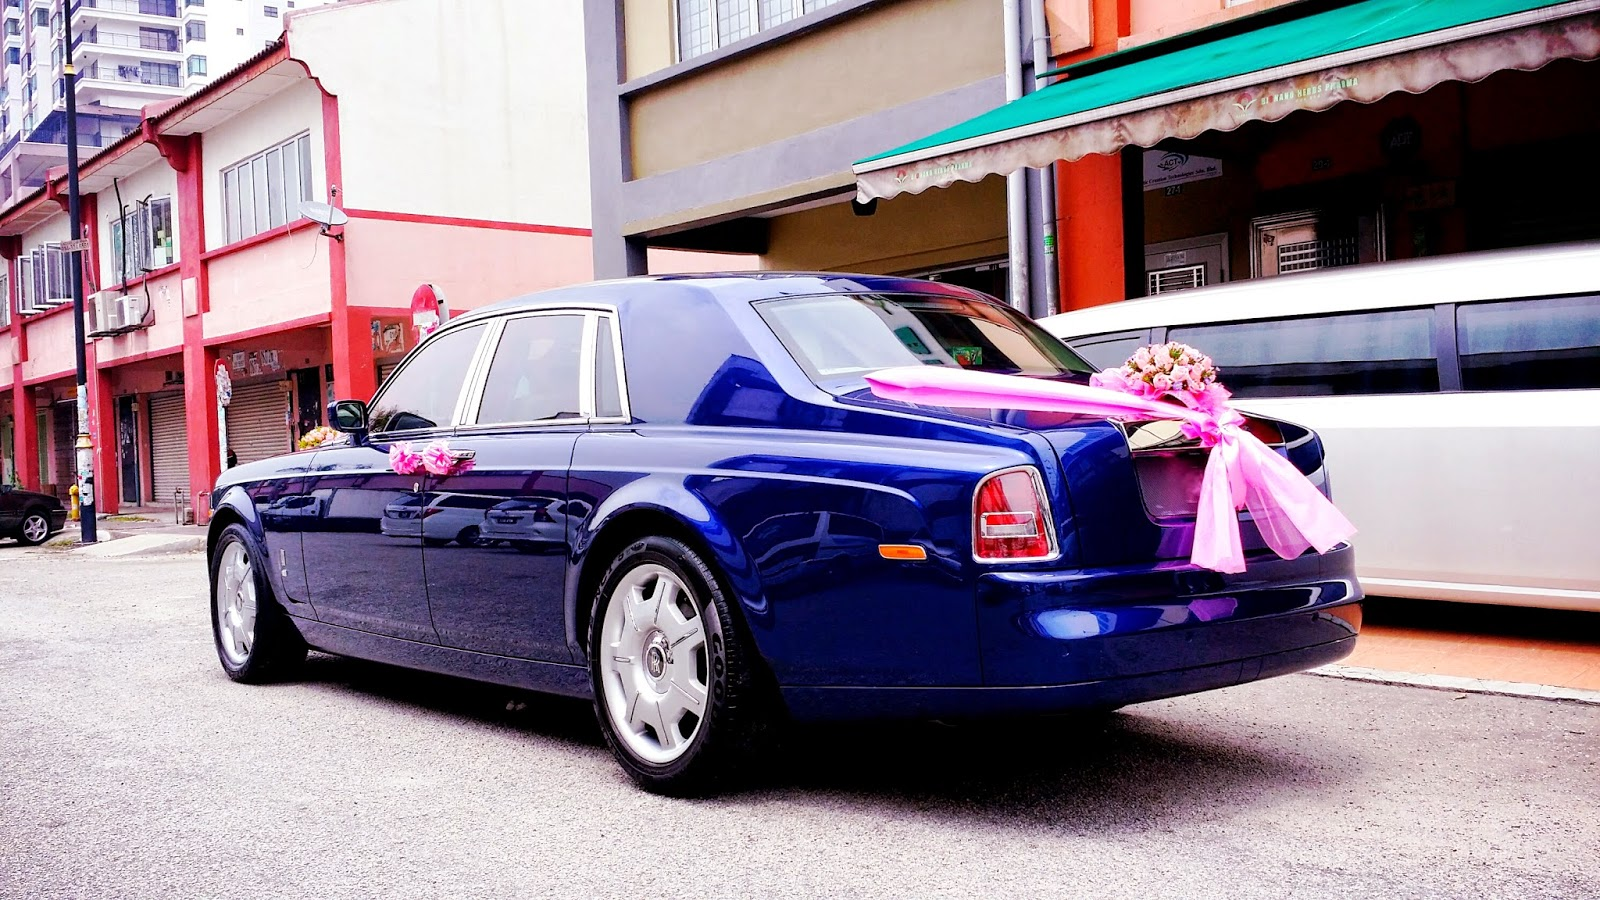 rolls royce phantom wedding rental with Rolls Royce Phantom With Pink Organza on Rolls Royce Hire France together with Novato Range Rover Stretch Limo additionally 42 Passenger Limo Coach Party Bus further Vendor Orlando Wedding Cars in addition Pictures Of Pearl White Cars.